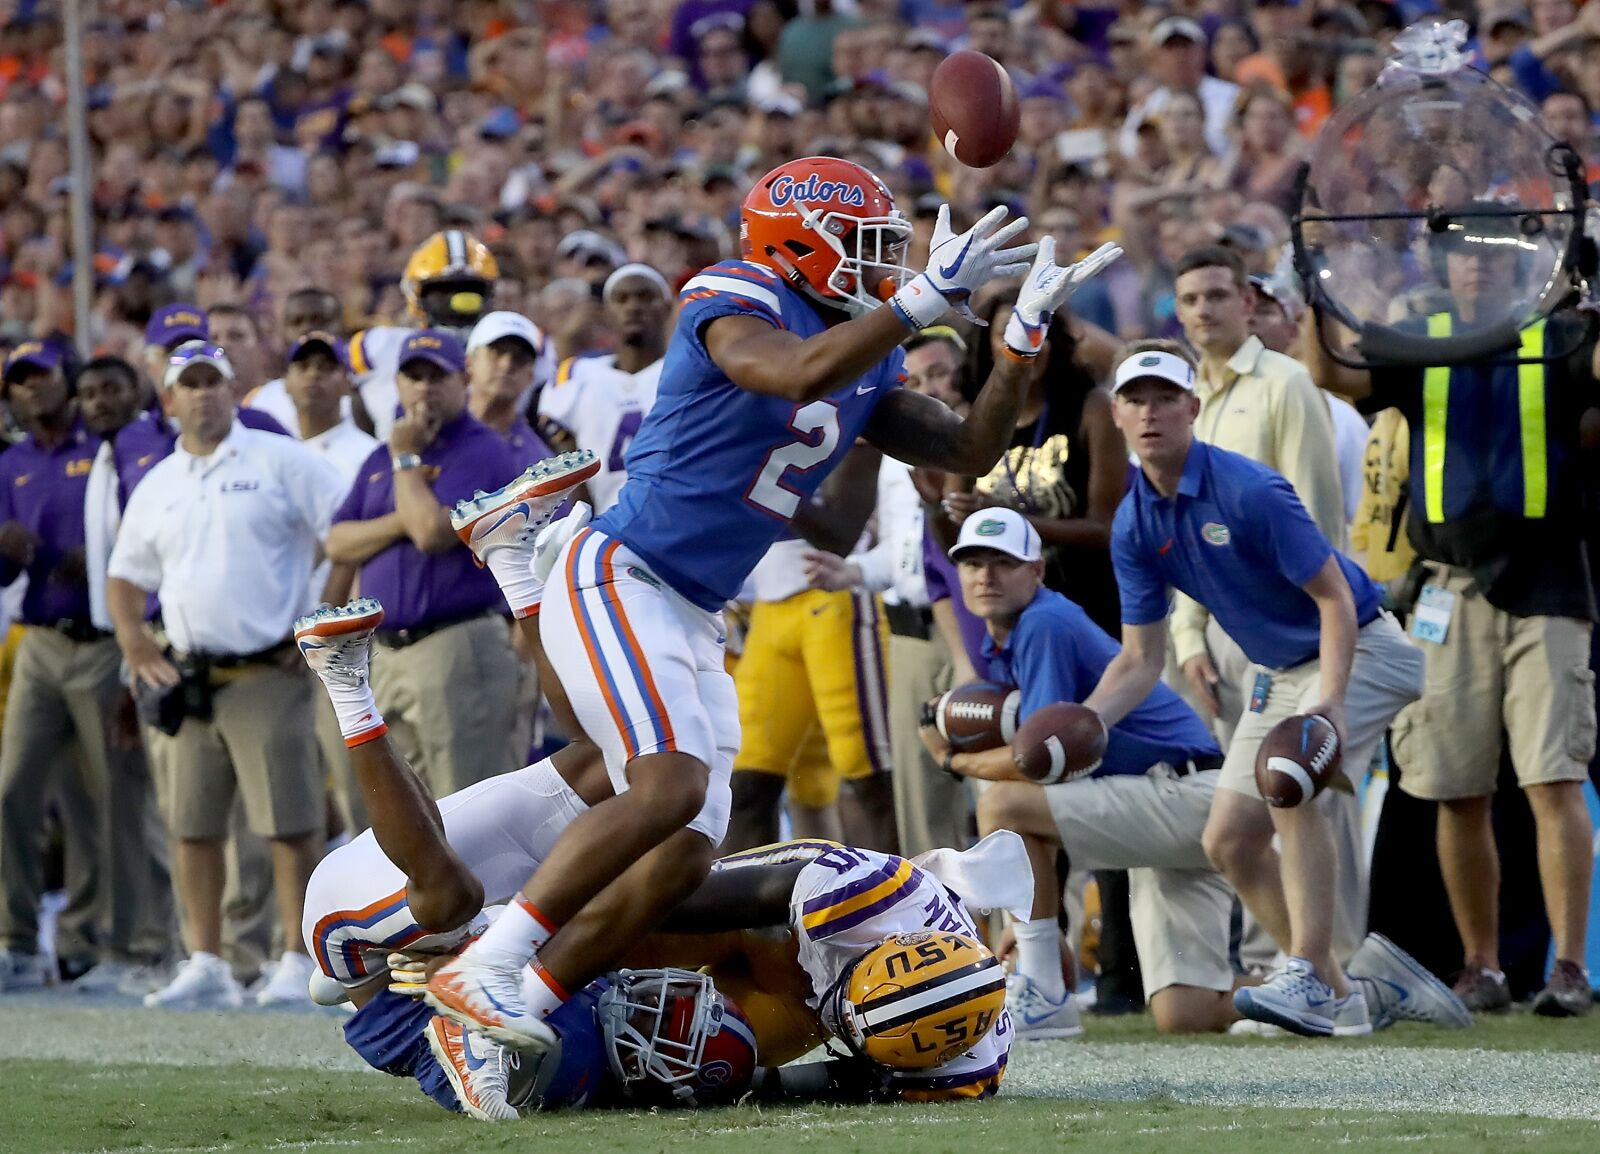 c86192bcc3f Week 6 Predictions  Florida Gators vs. LSU Tigers